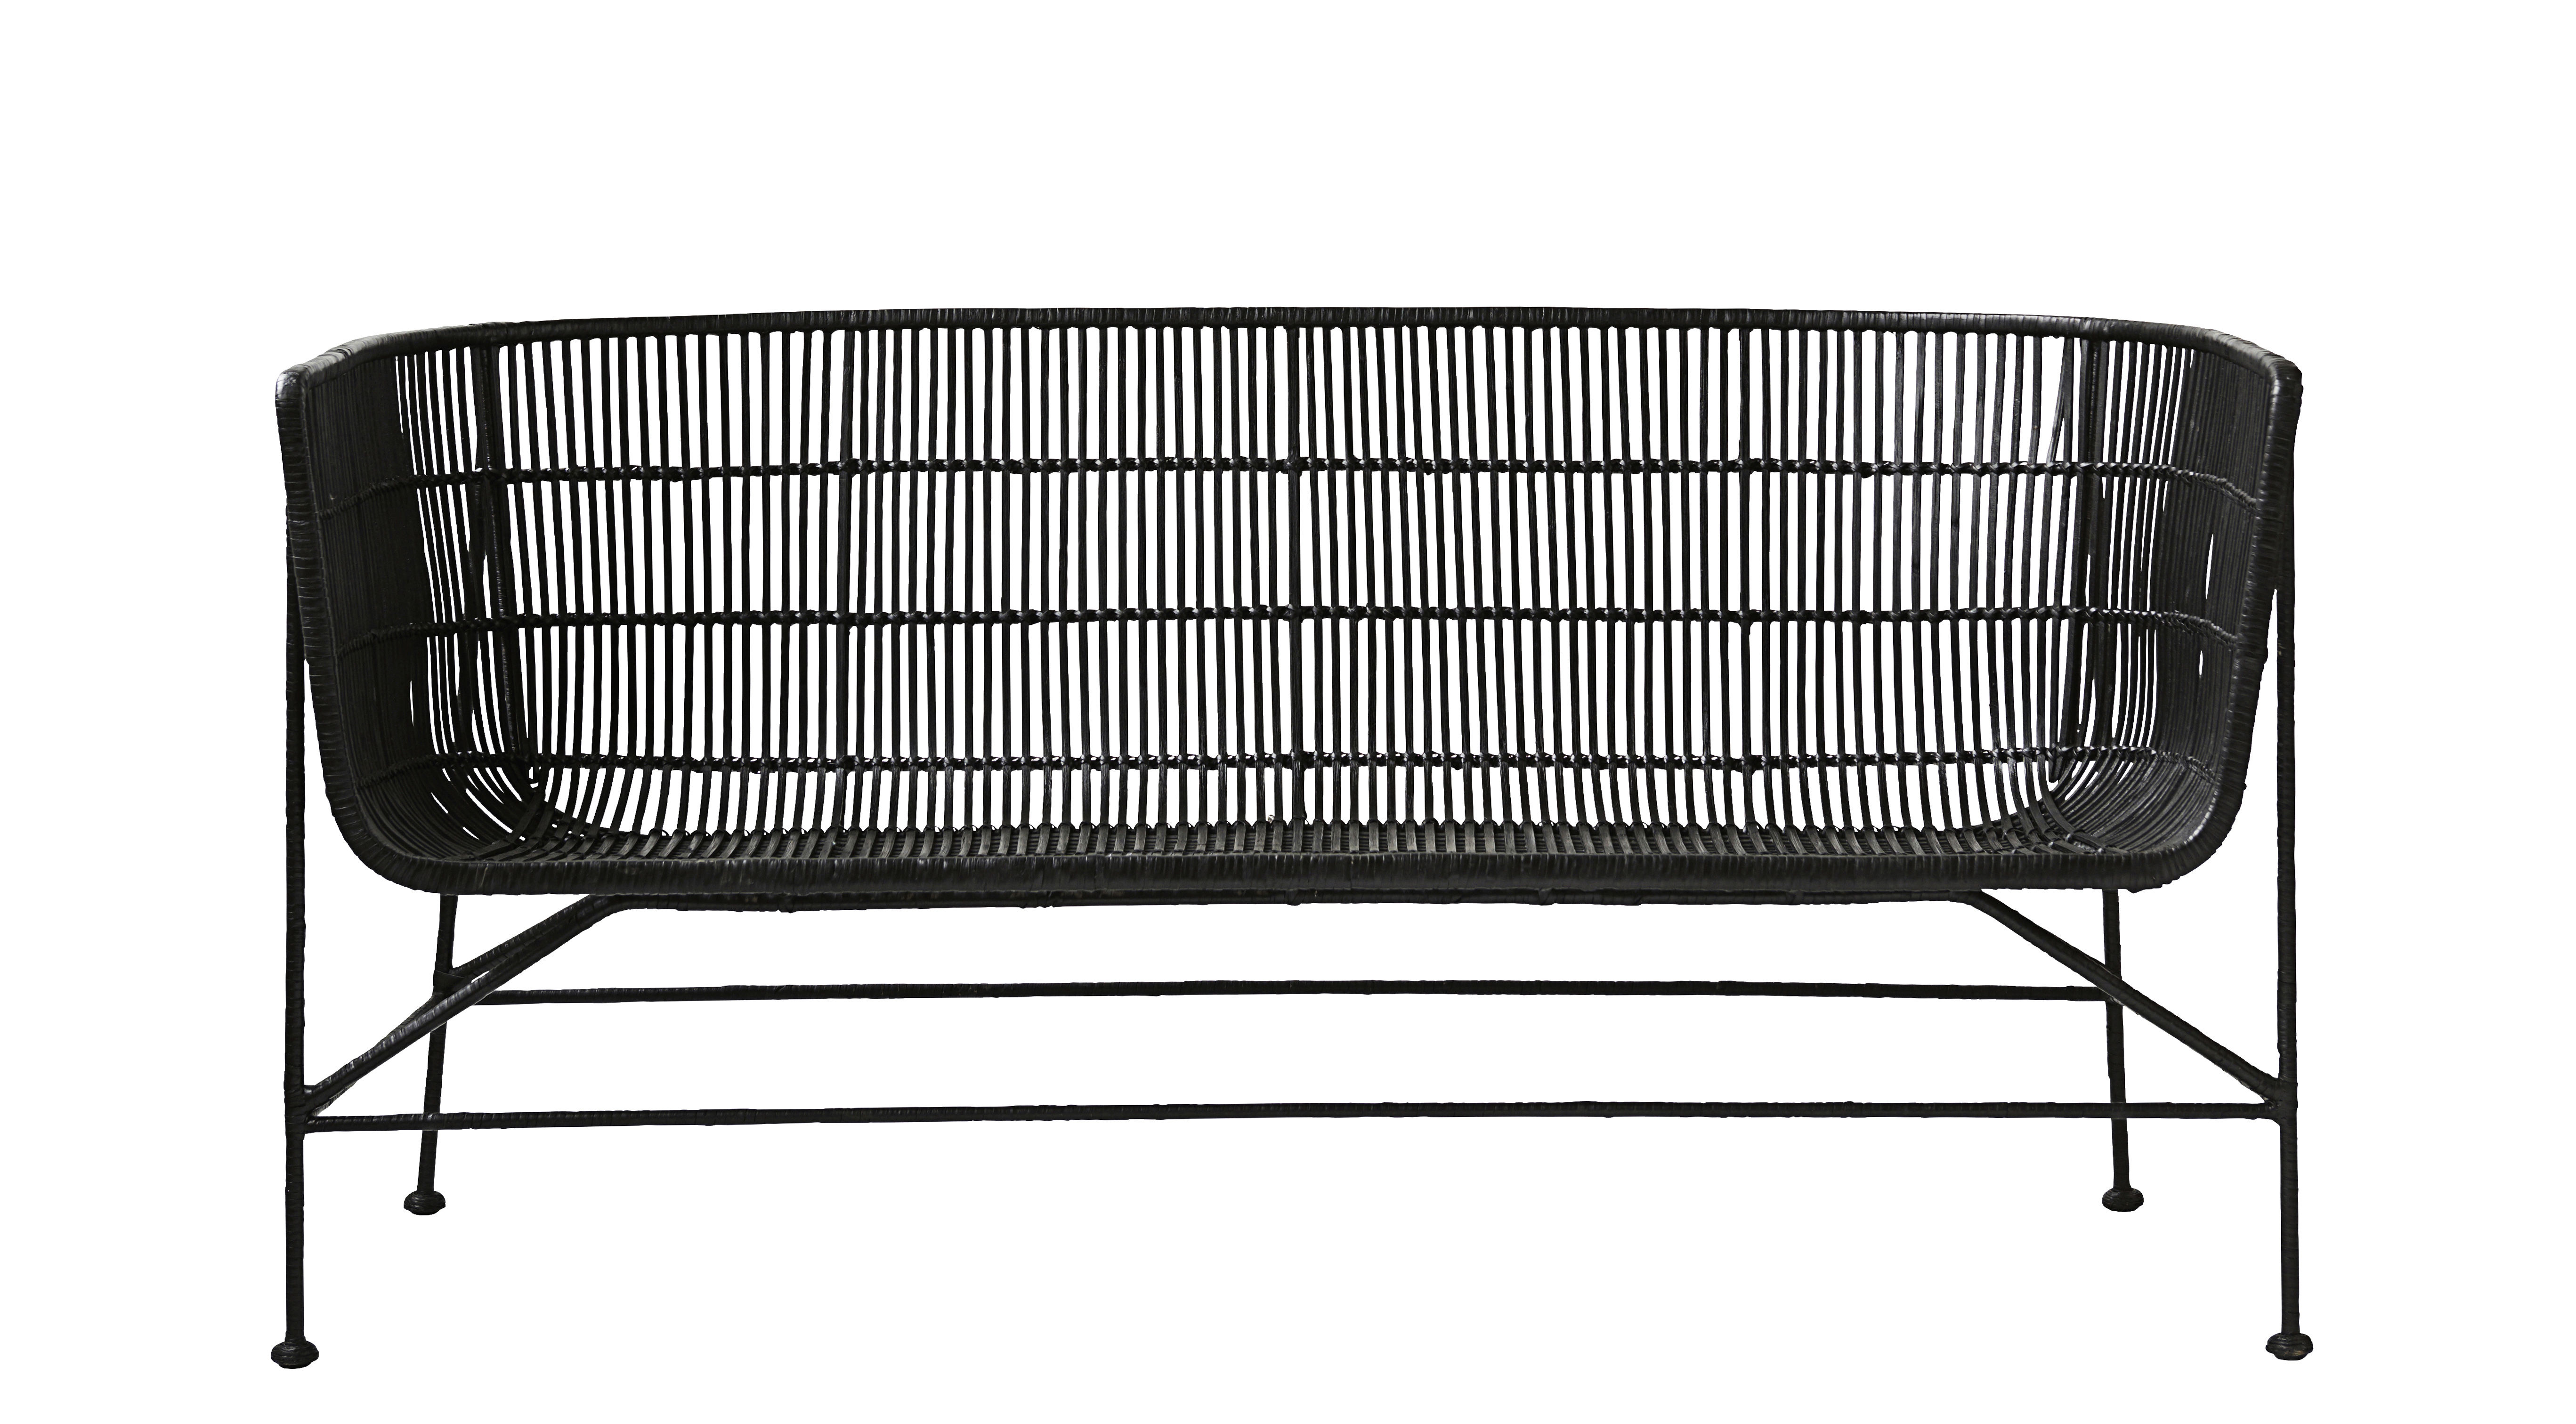 Furniture - Sofas - Cuun 2 seater sofa - / 2 seats - L 140 cm by House Doctor - Bench / Black - Iron, Rattan